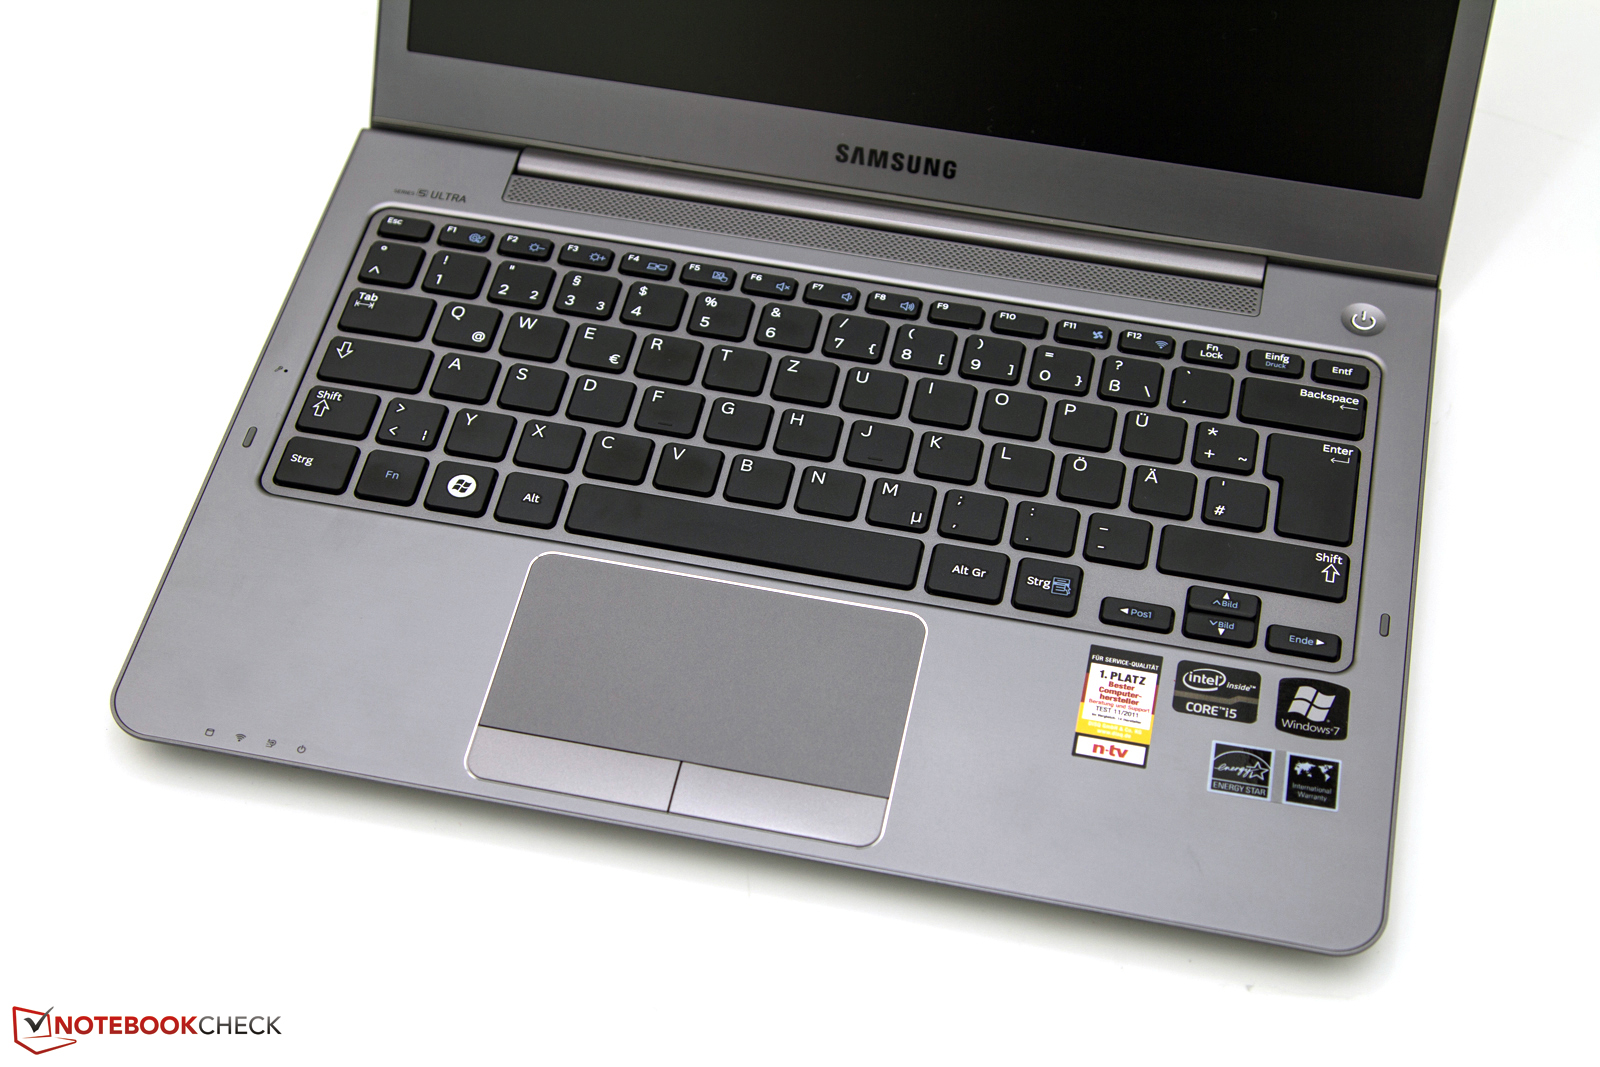 SAMSUNG NP530U3C-A06US EXPRESSCACHE WINDOWS 7 DRIVER